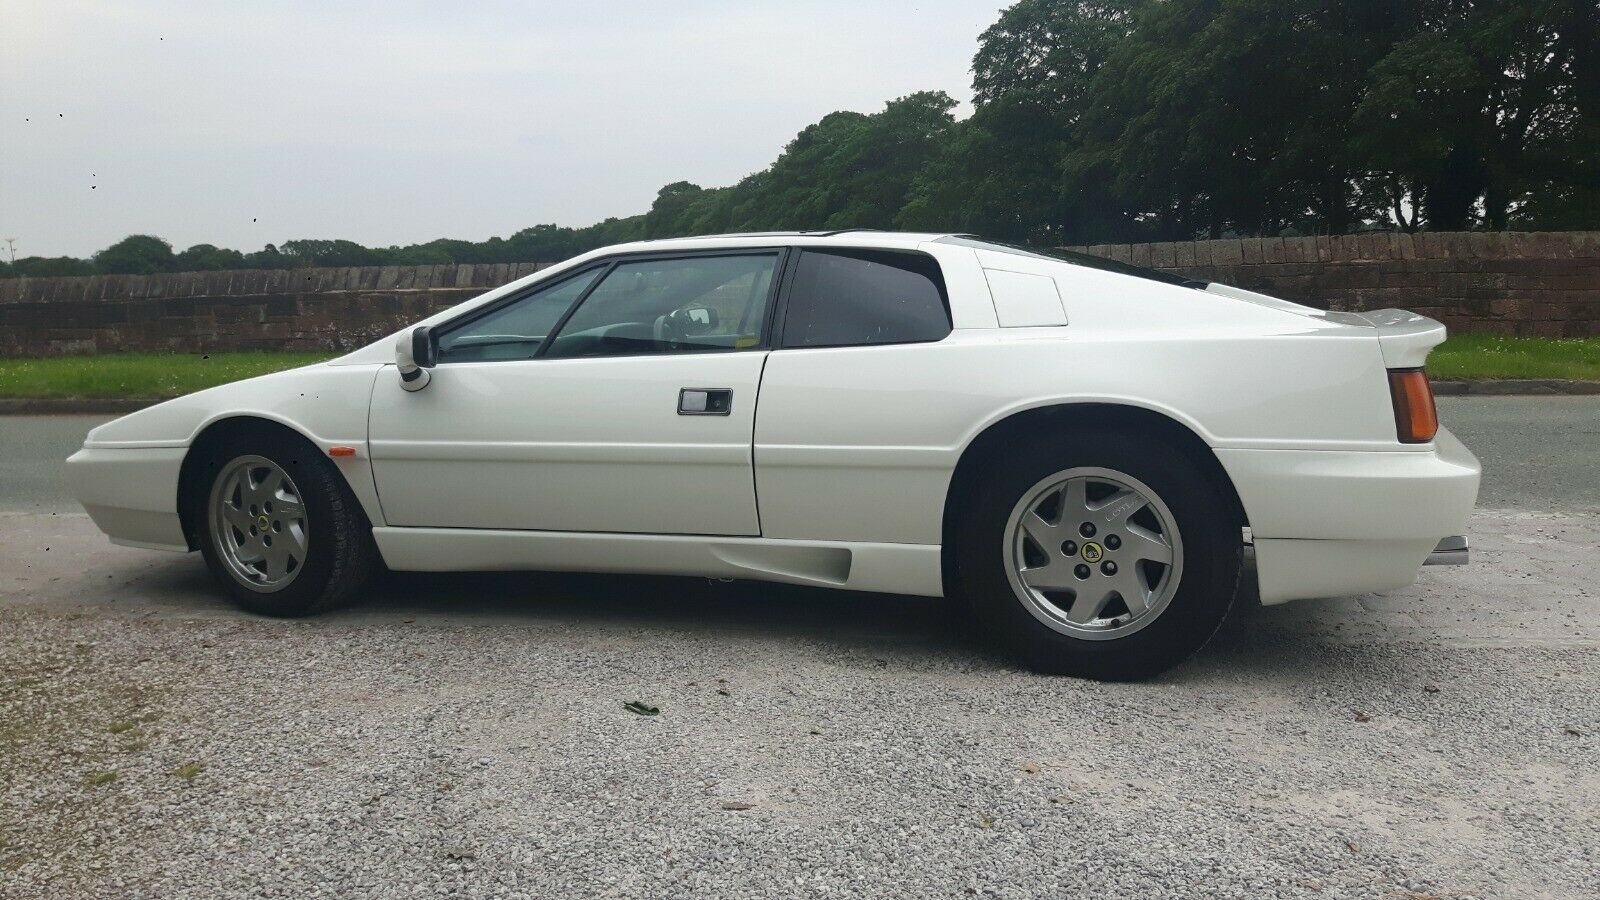 1988 Stevens Lotus Esprit Turbo Limited Edition. For Sale (picture 2 of 6)